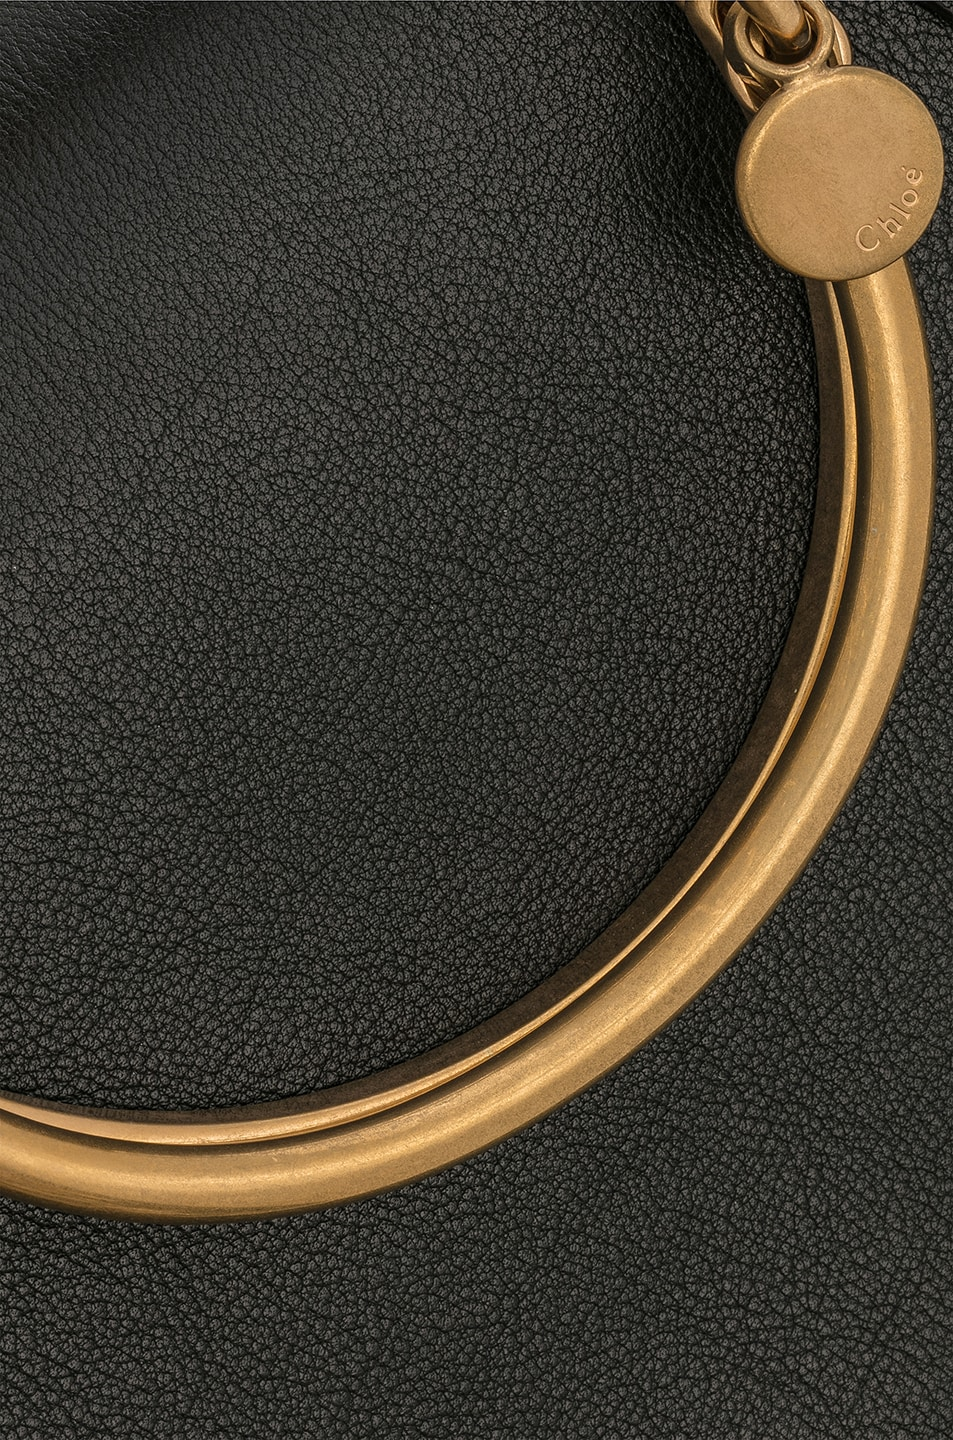 Image 8 of Chloe Small Nile Calfskin & Suede Bracelet Bag in Black